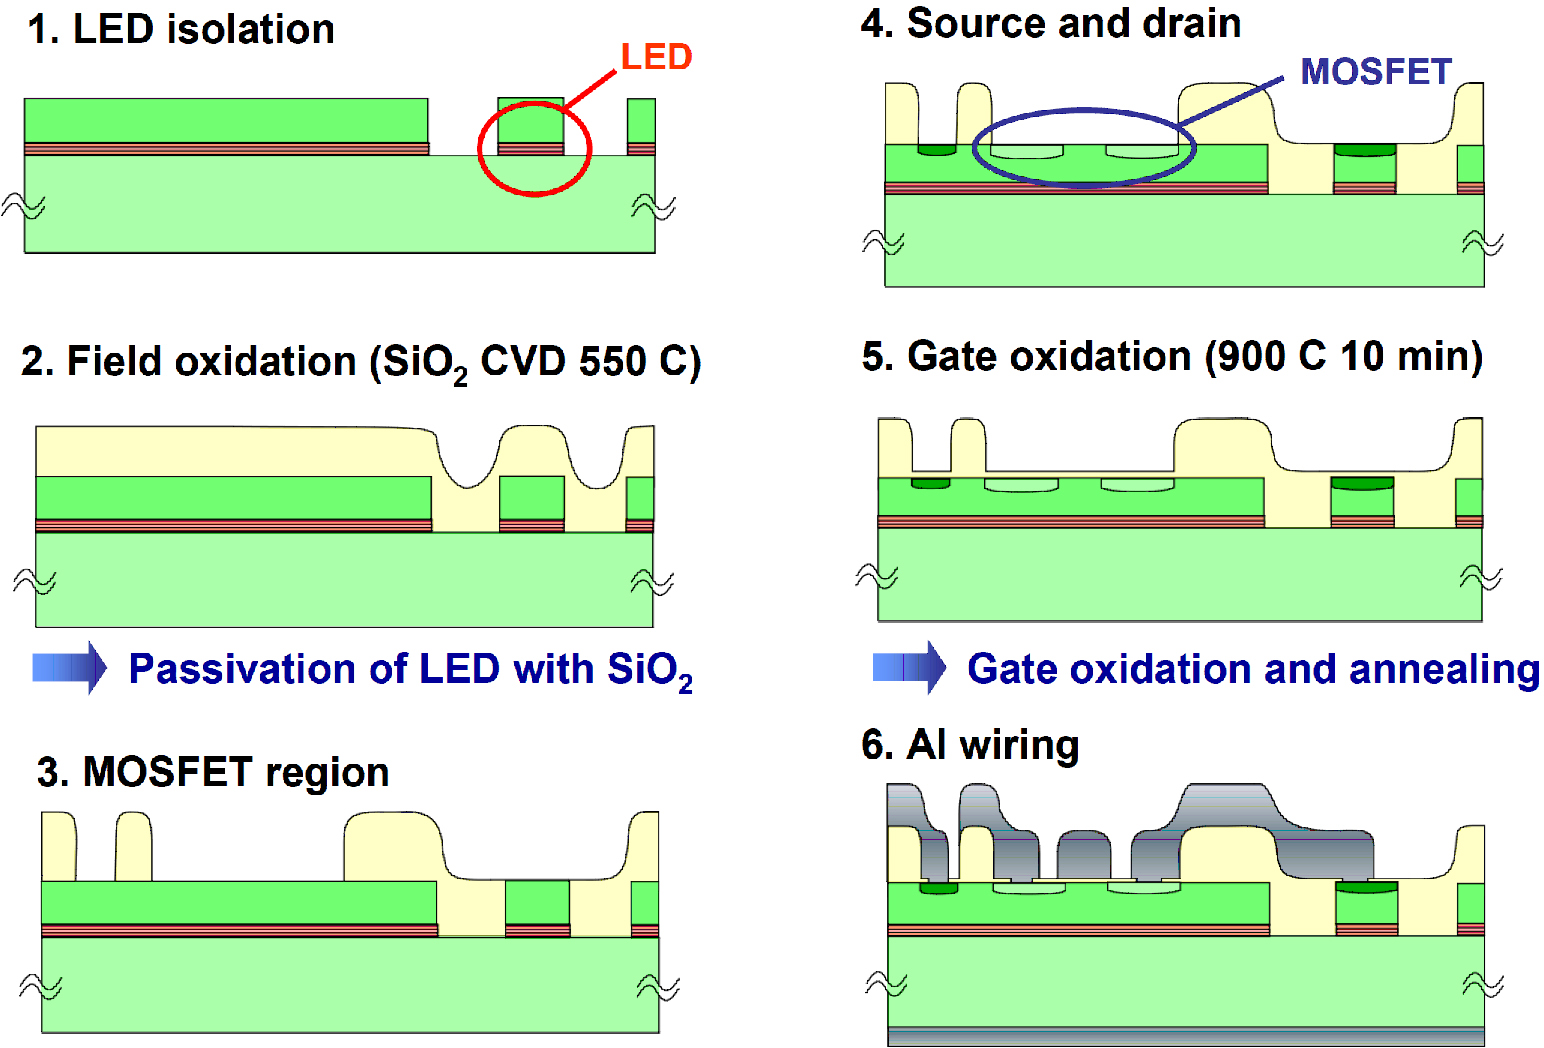 Monolithic Integration Of Light Emitting Devices And Silicon Led Diode Wiring Diagram Steps In The Fabrication Process Flow For Oeics Based On A Conventional Mosfet Is Formed Iii V Layers Starting Material